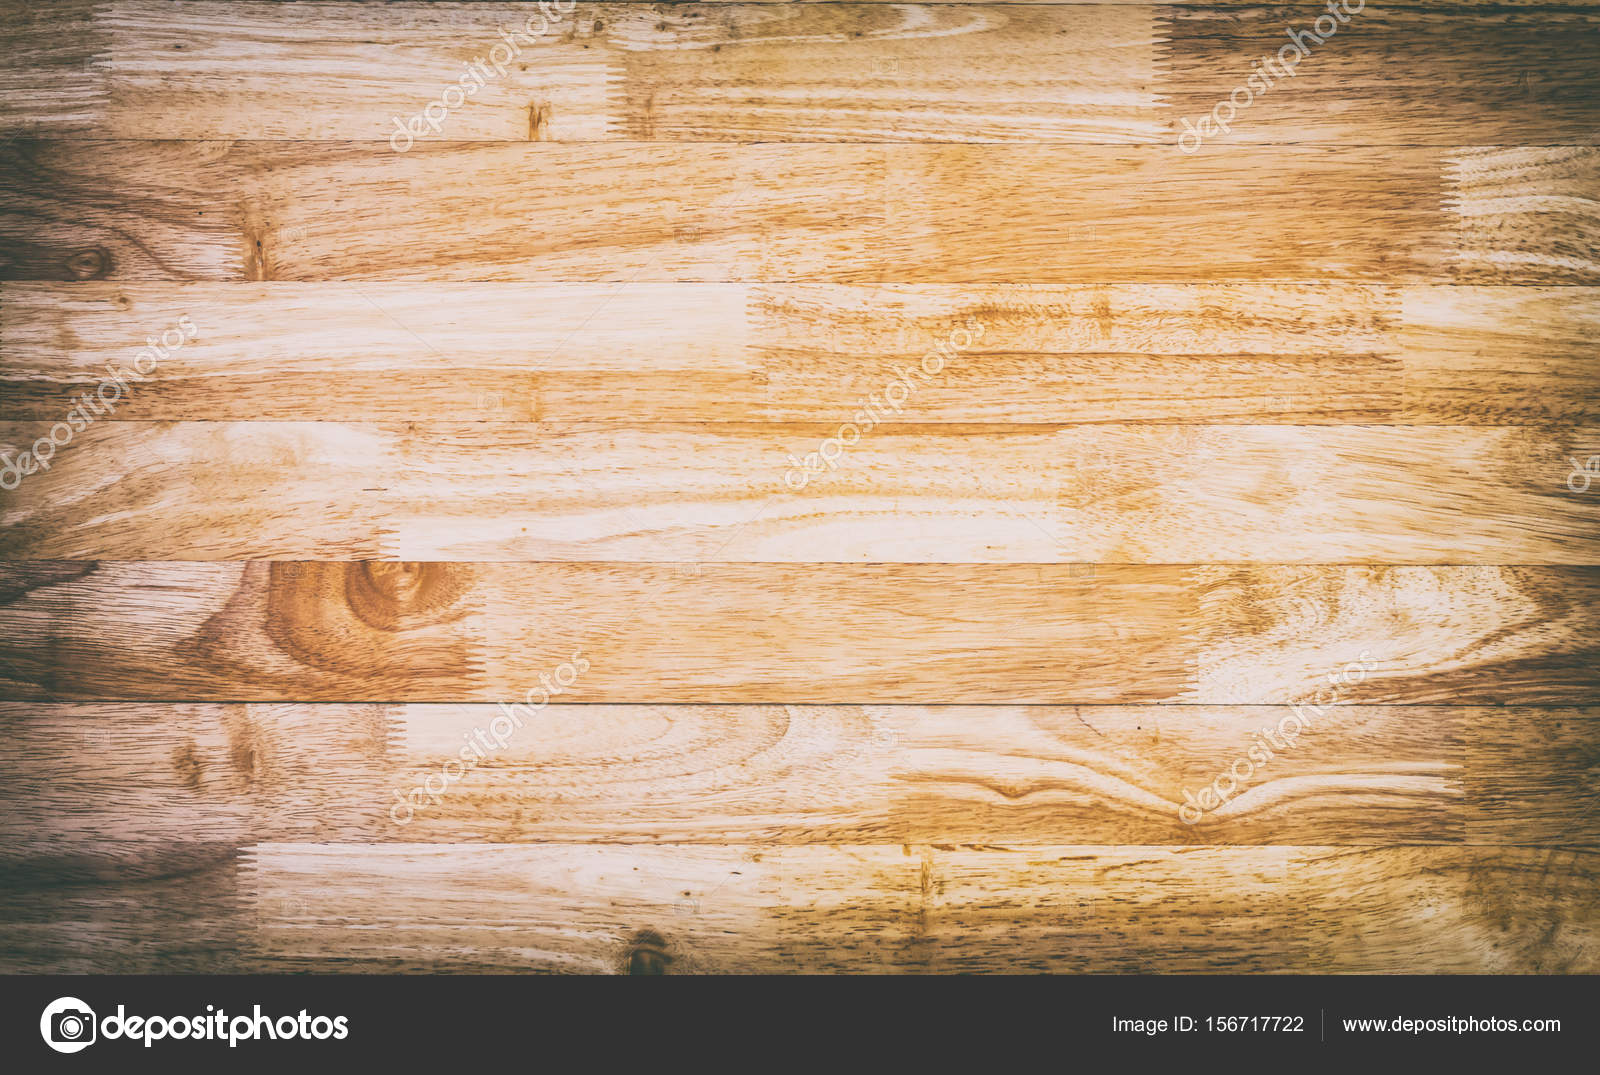 Close Up Of Dark Rustic Wall Made Old Wood Table Planks Texture Brown Background Template For Your Design